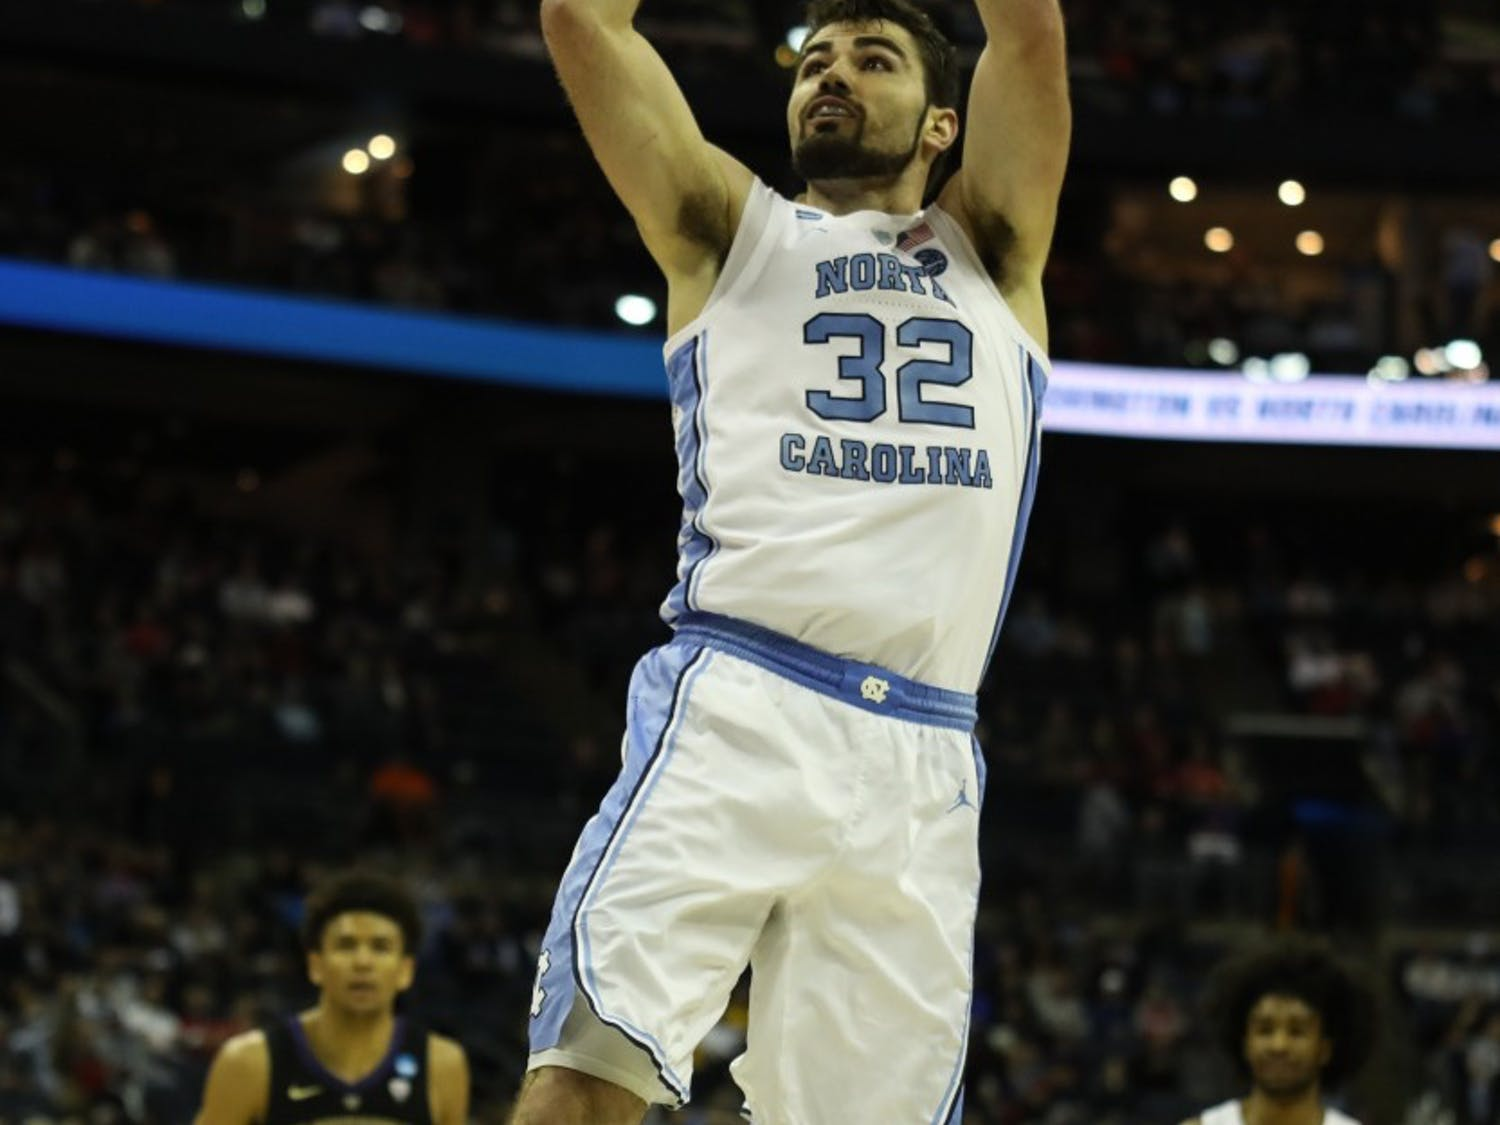 Senior forward Luke Maye (32) takes a shot against Washington in the second round of the NCAA tournament at Nationwide Arena in Columbus, OH on Sunday, March 24, 2019. UNC defeated Washington 81-59.